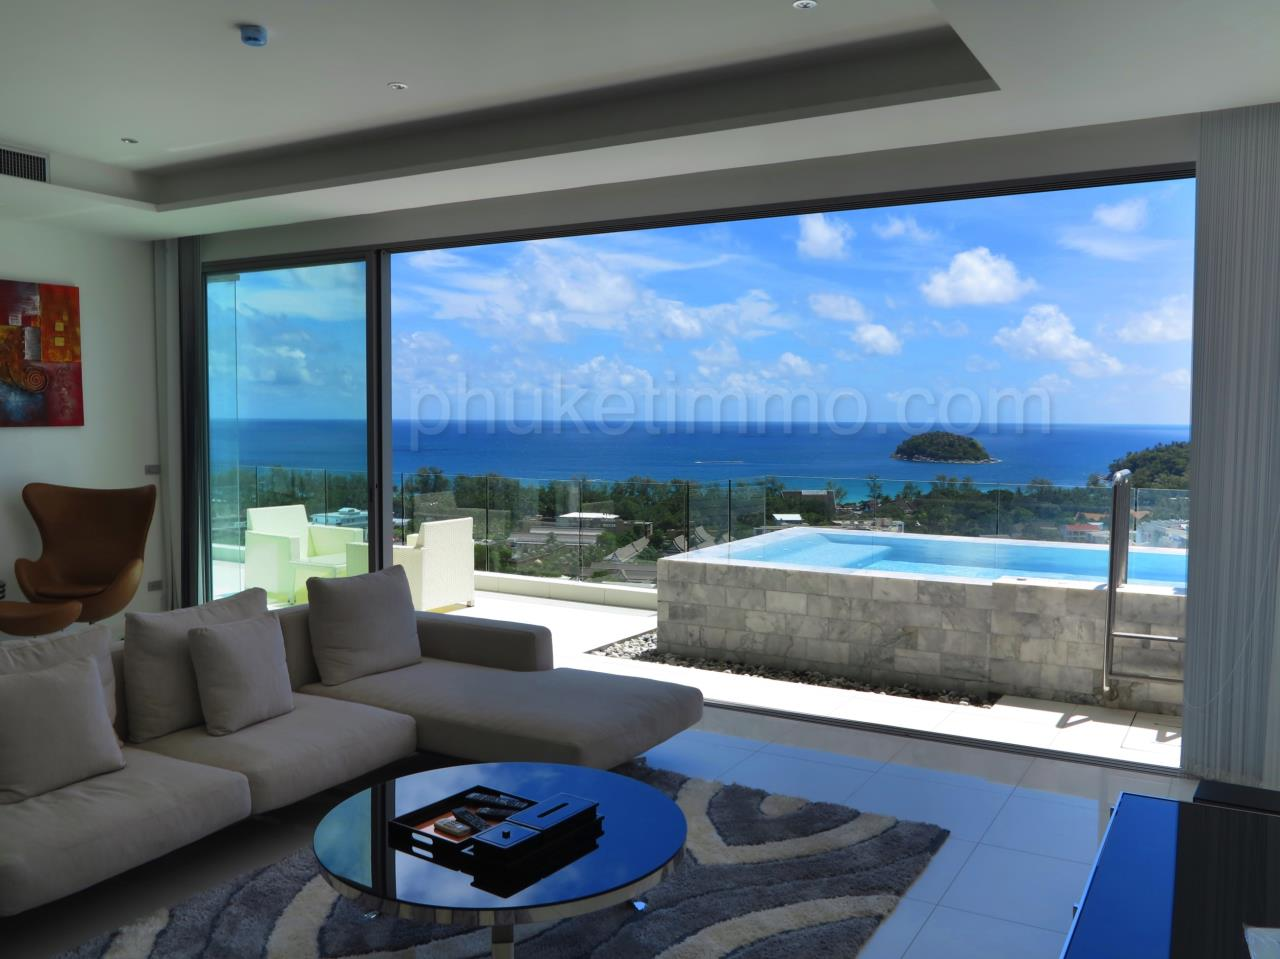 Phuket Immobiliere Agency Co.Ltd. Agency's Kata Panoramic Sea View Condominium 10